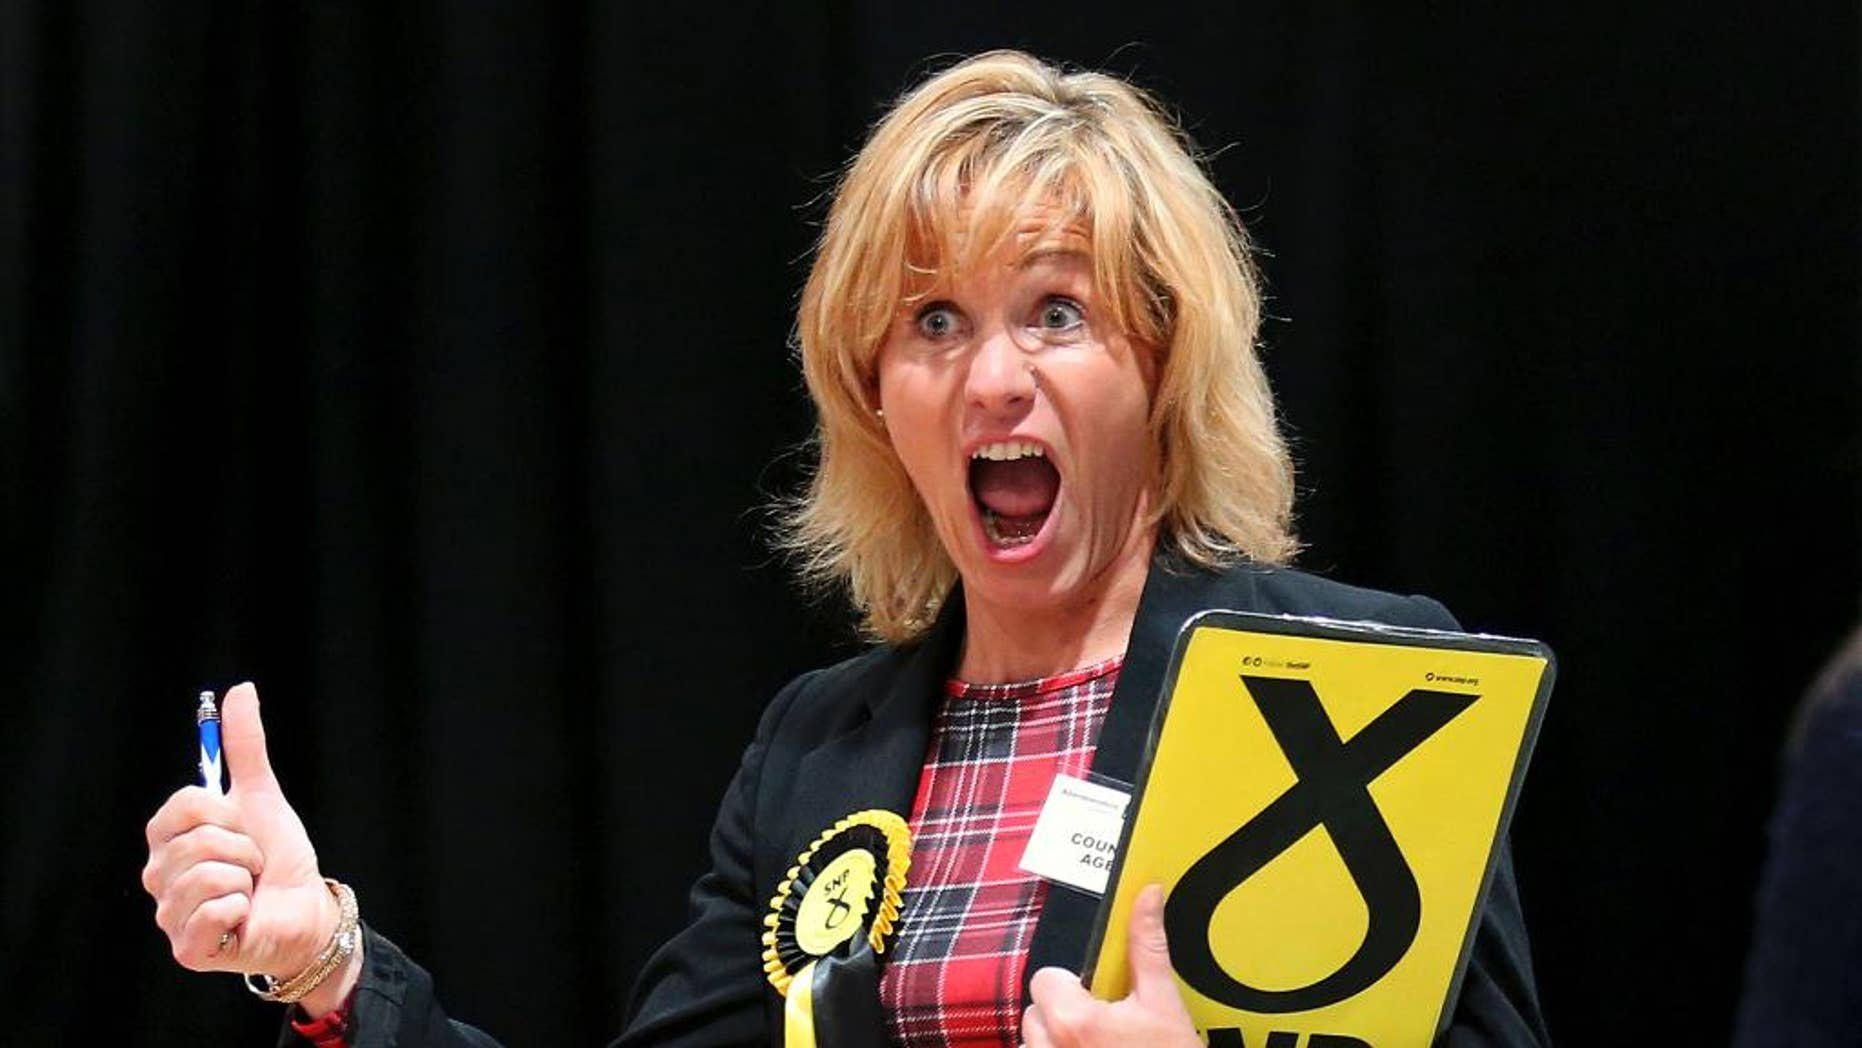 A Scottish National Party (SNP) election canvasser reacts as she views ballot papers being counted for the Banff and Buchan, Gordon, and West Aberdeenshire and Kincardine constituency counts in Britain's election at the Aberdeen Exhibition and Conference Centre in Aberdeen, Scotland Friday May 8, 2015. (Andrew Milligan/PA via AP) UNITED KINGDOM OUT, NO SALES, NO ARCHIVE